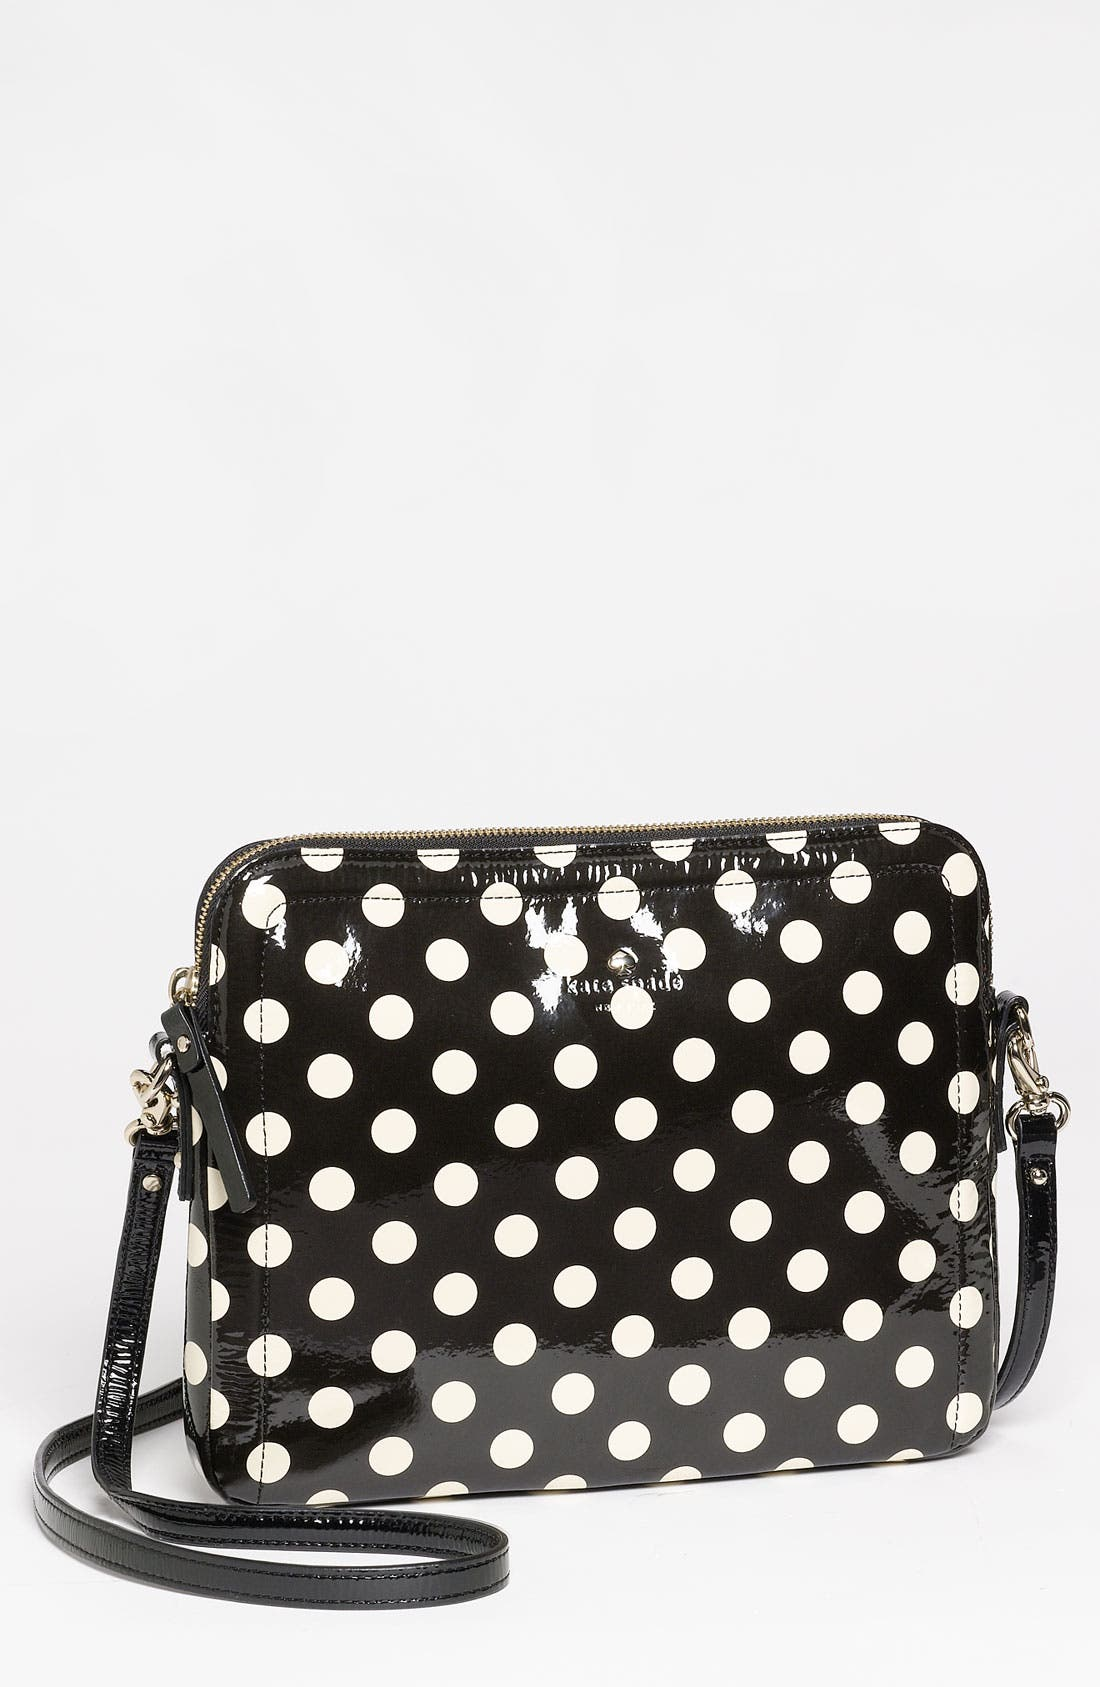 Alternate Image 1 Selected - kate spade new york 'carlisle street - bryce' iPad crossbody bag